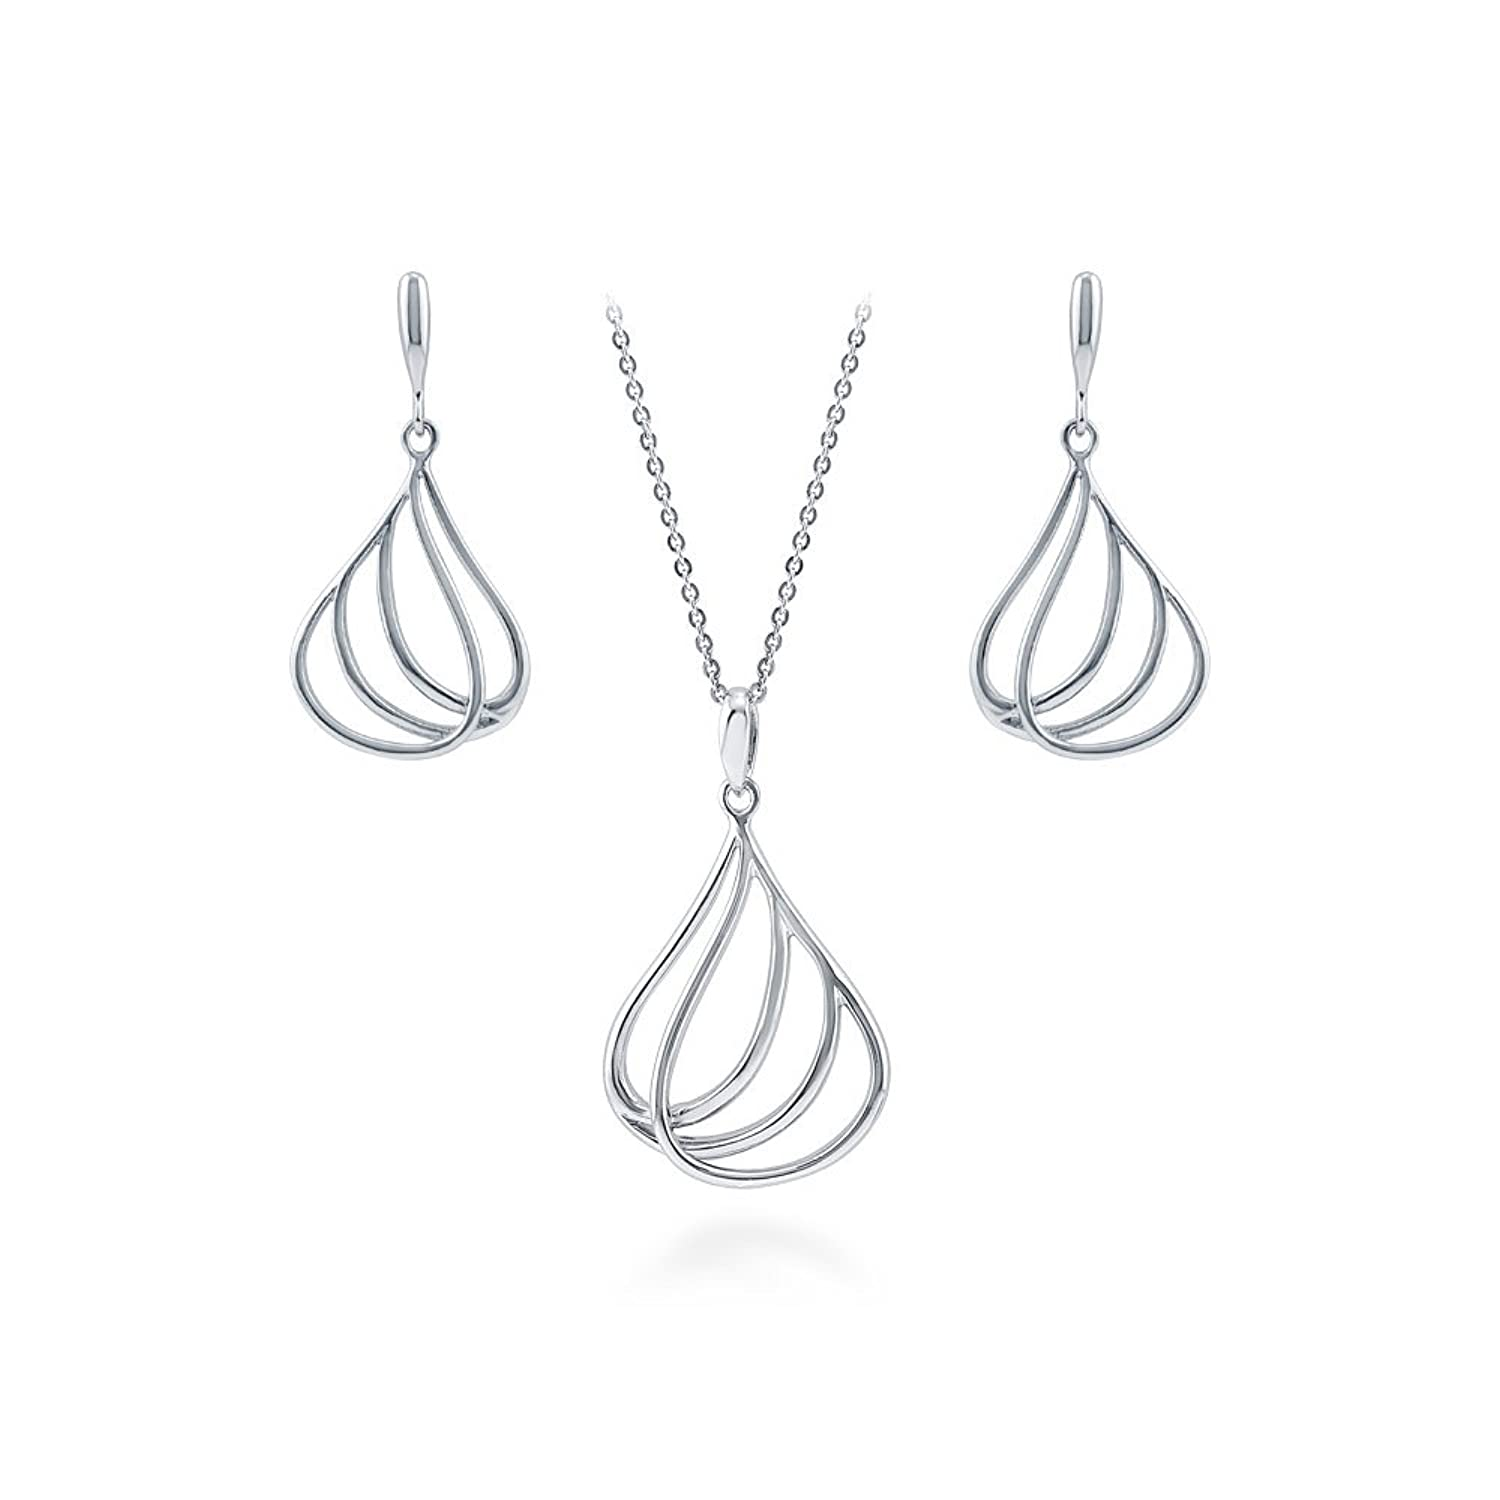 BERRICLE Rhodium Plated Sterling Silver Teardrop Woven Fashion Necklace and Earrings Set